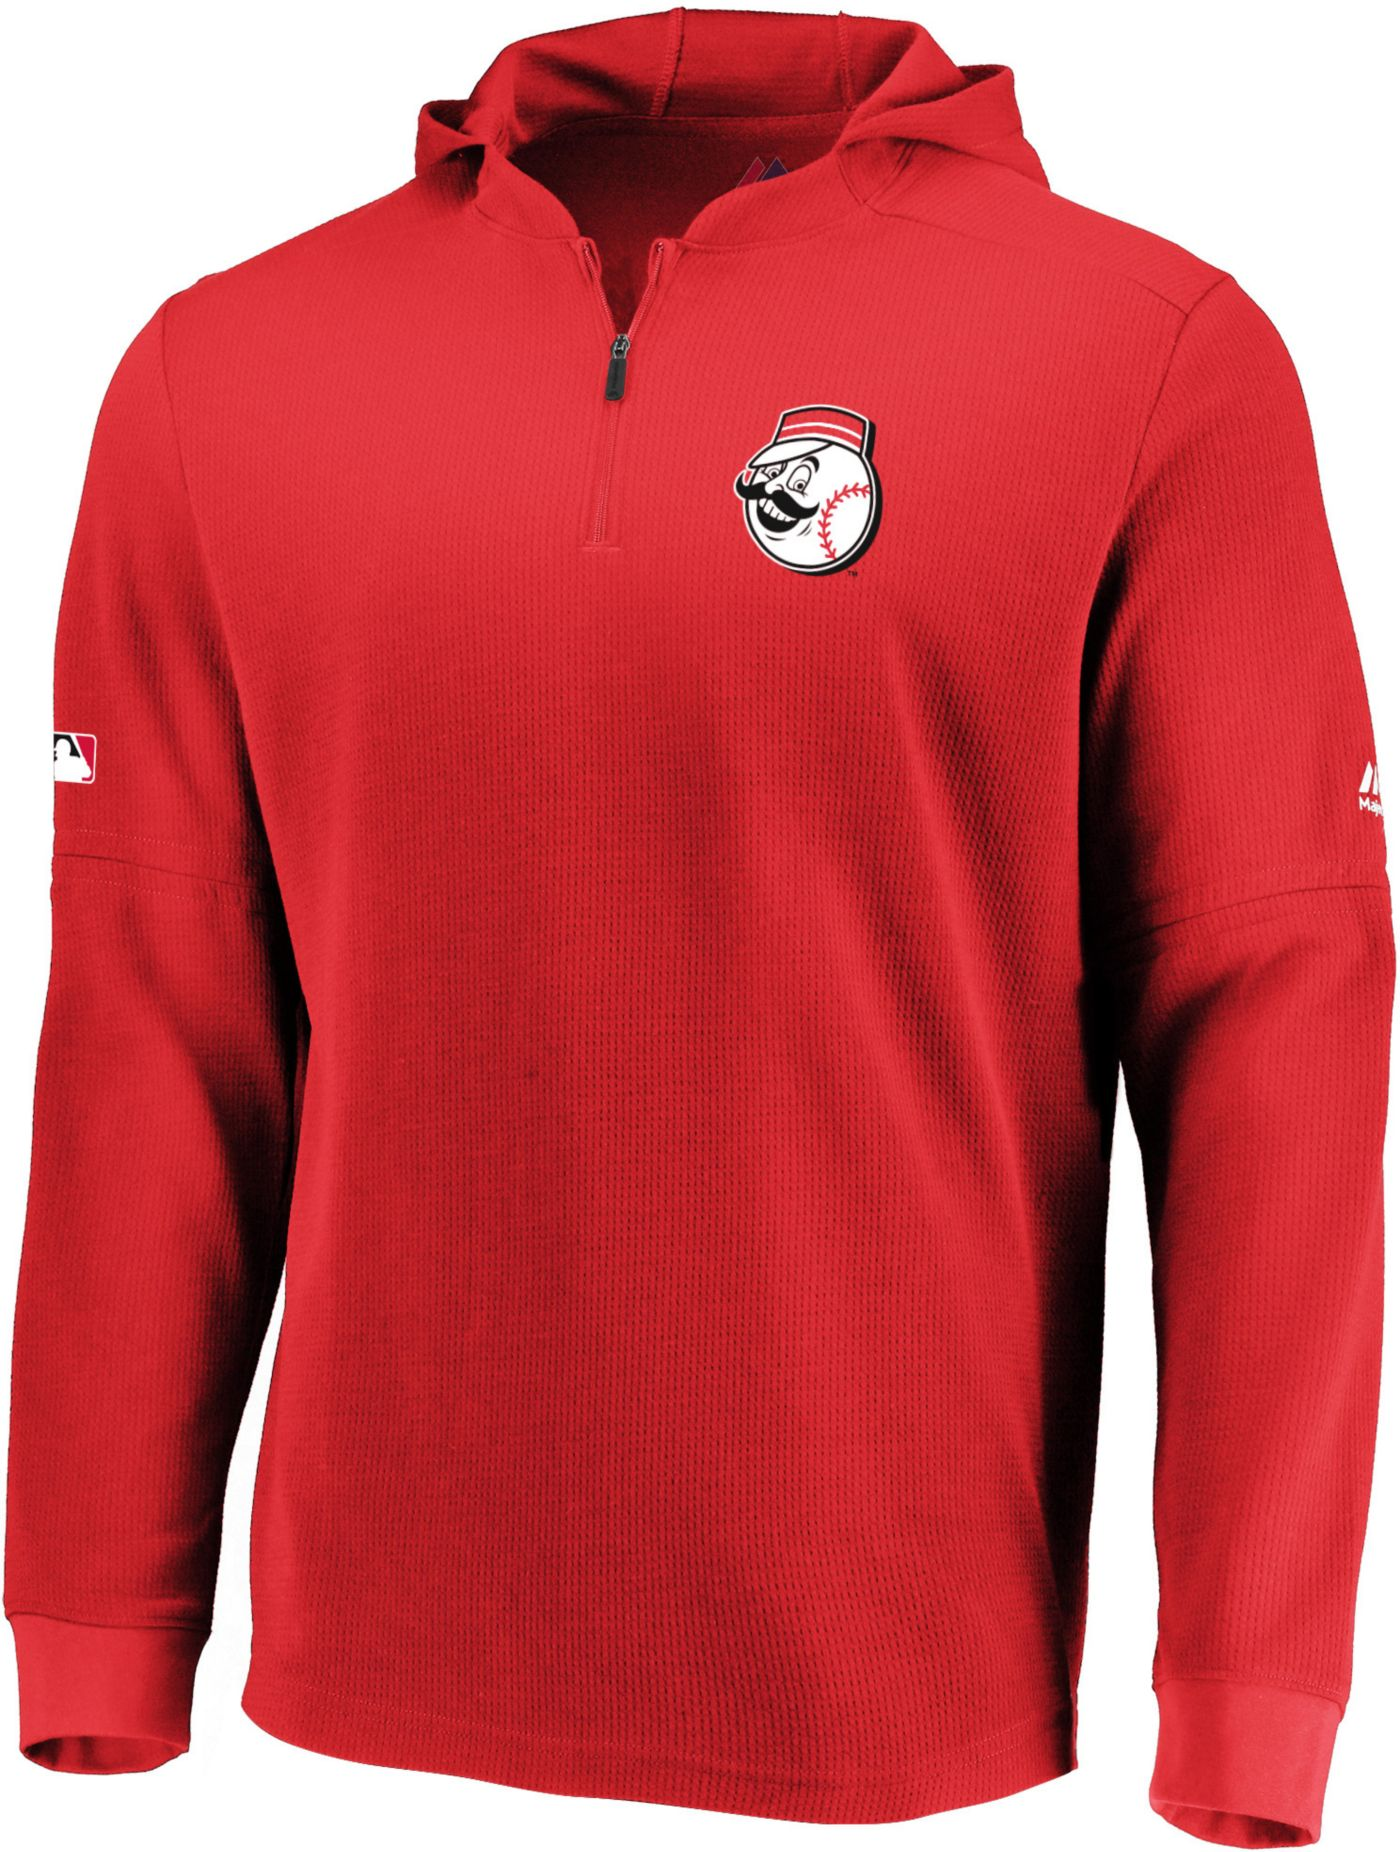 Majestic Men's Cincinnati Reds Authentic Collection Batting Practice Waffle Hooded Pullover